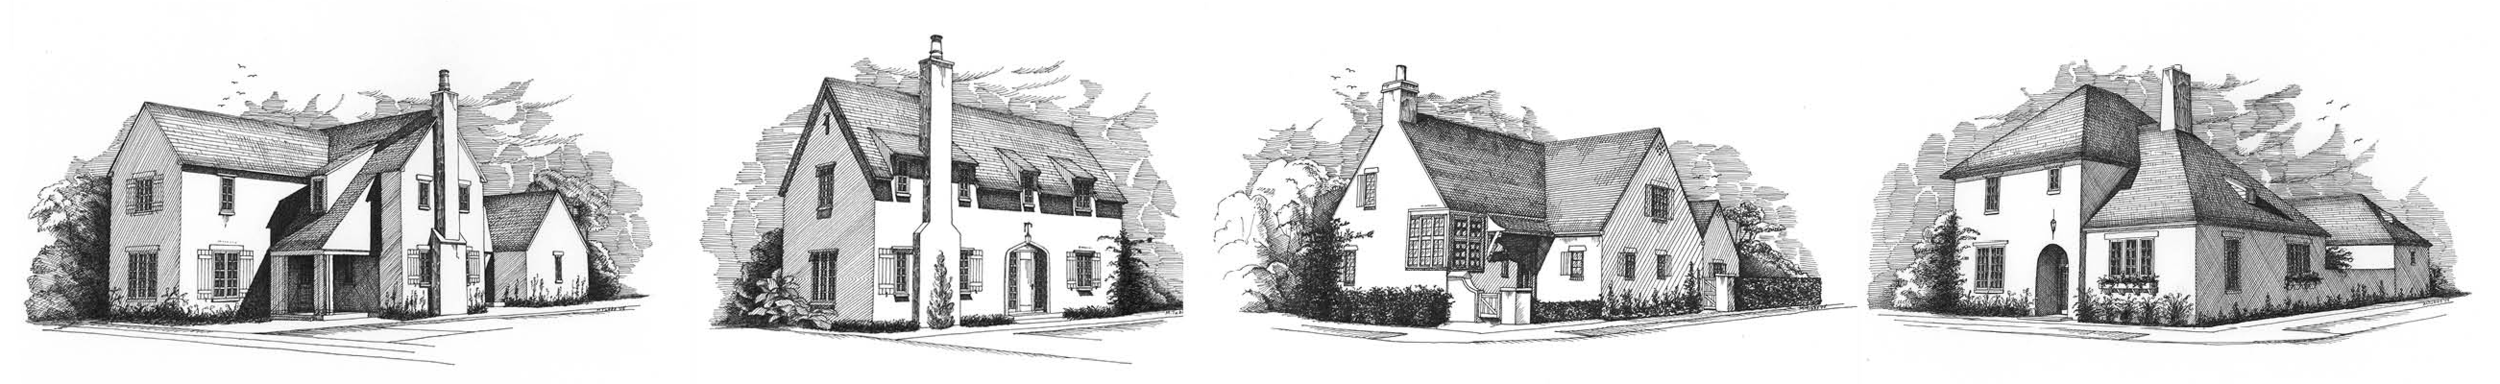 Hampstead Homes Illustrations